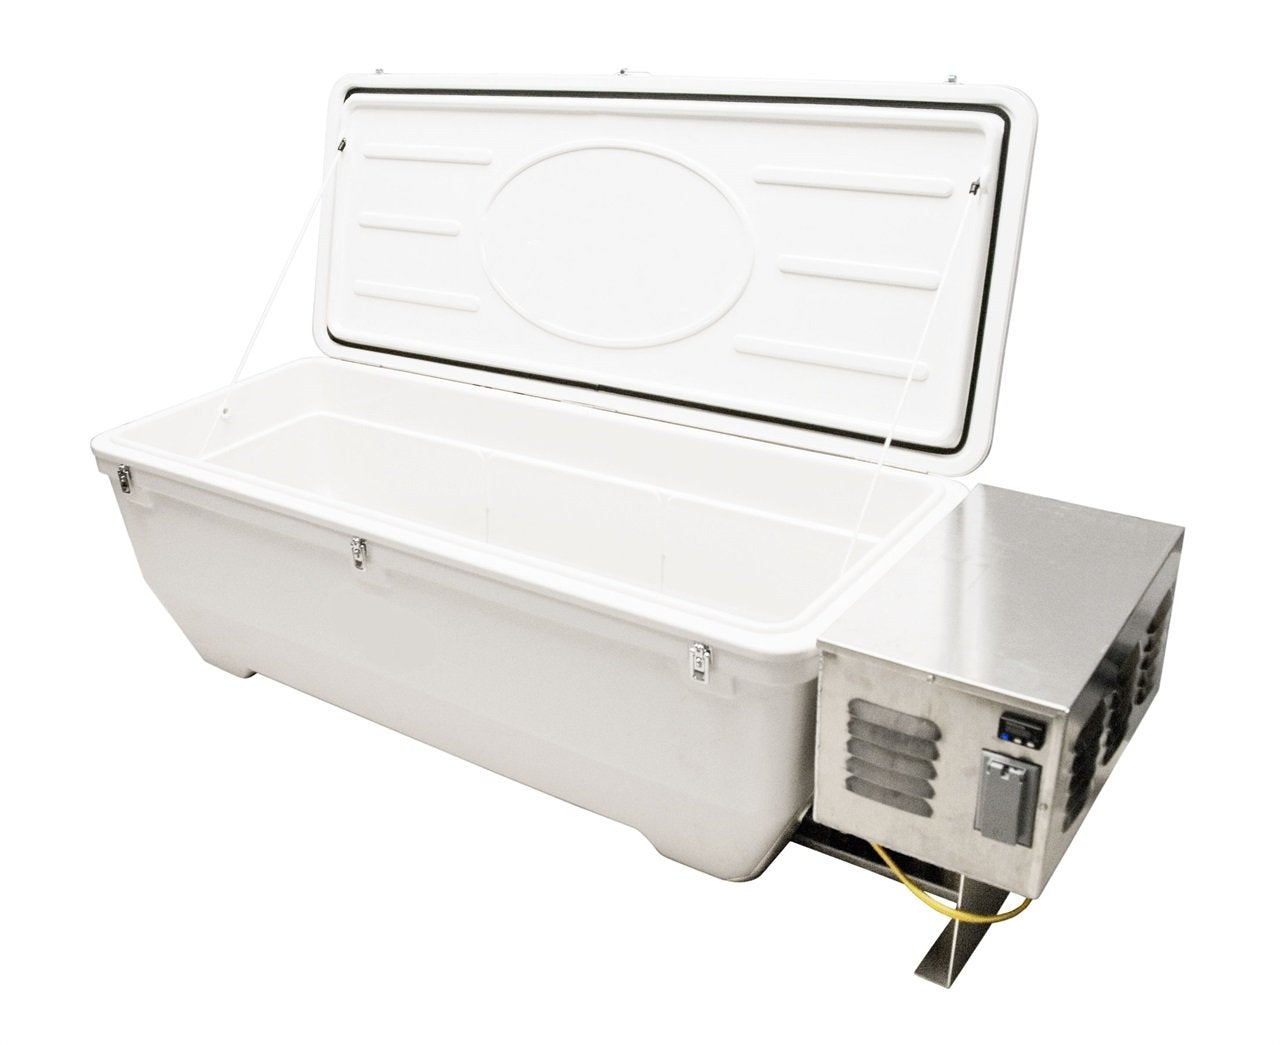 Thermocure Portable Curing Box (115V/60Hz)